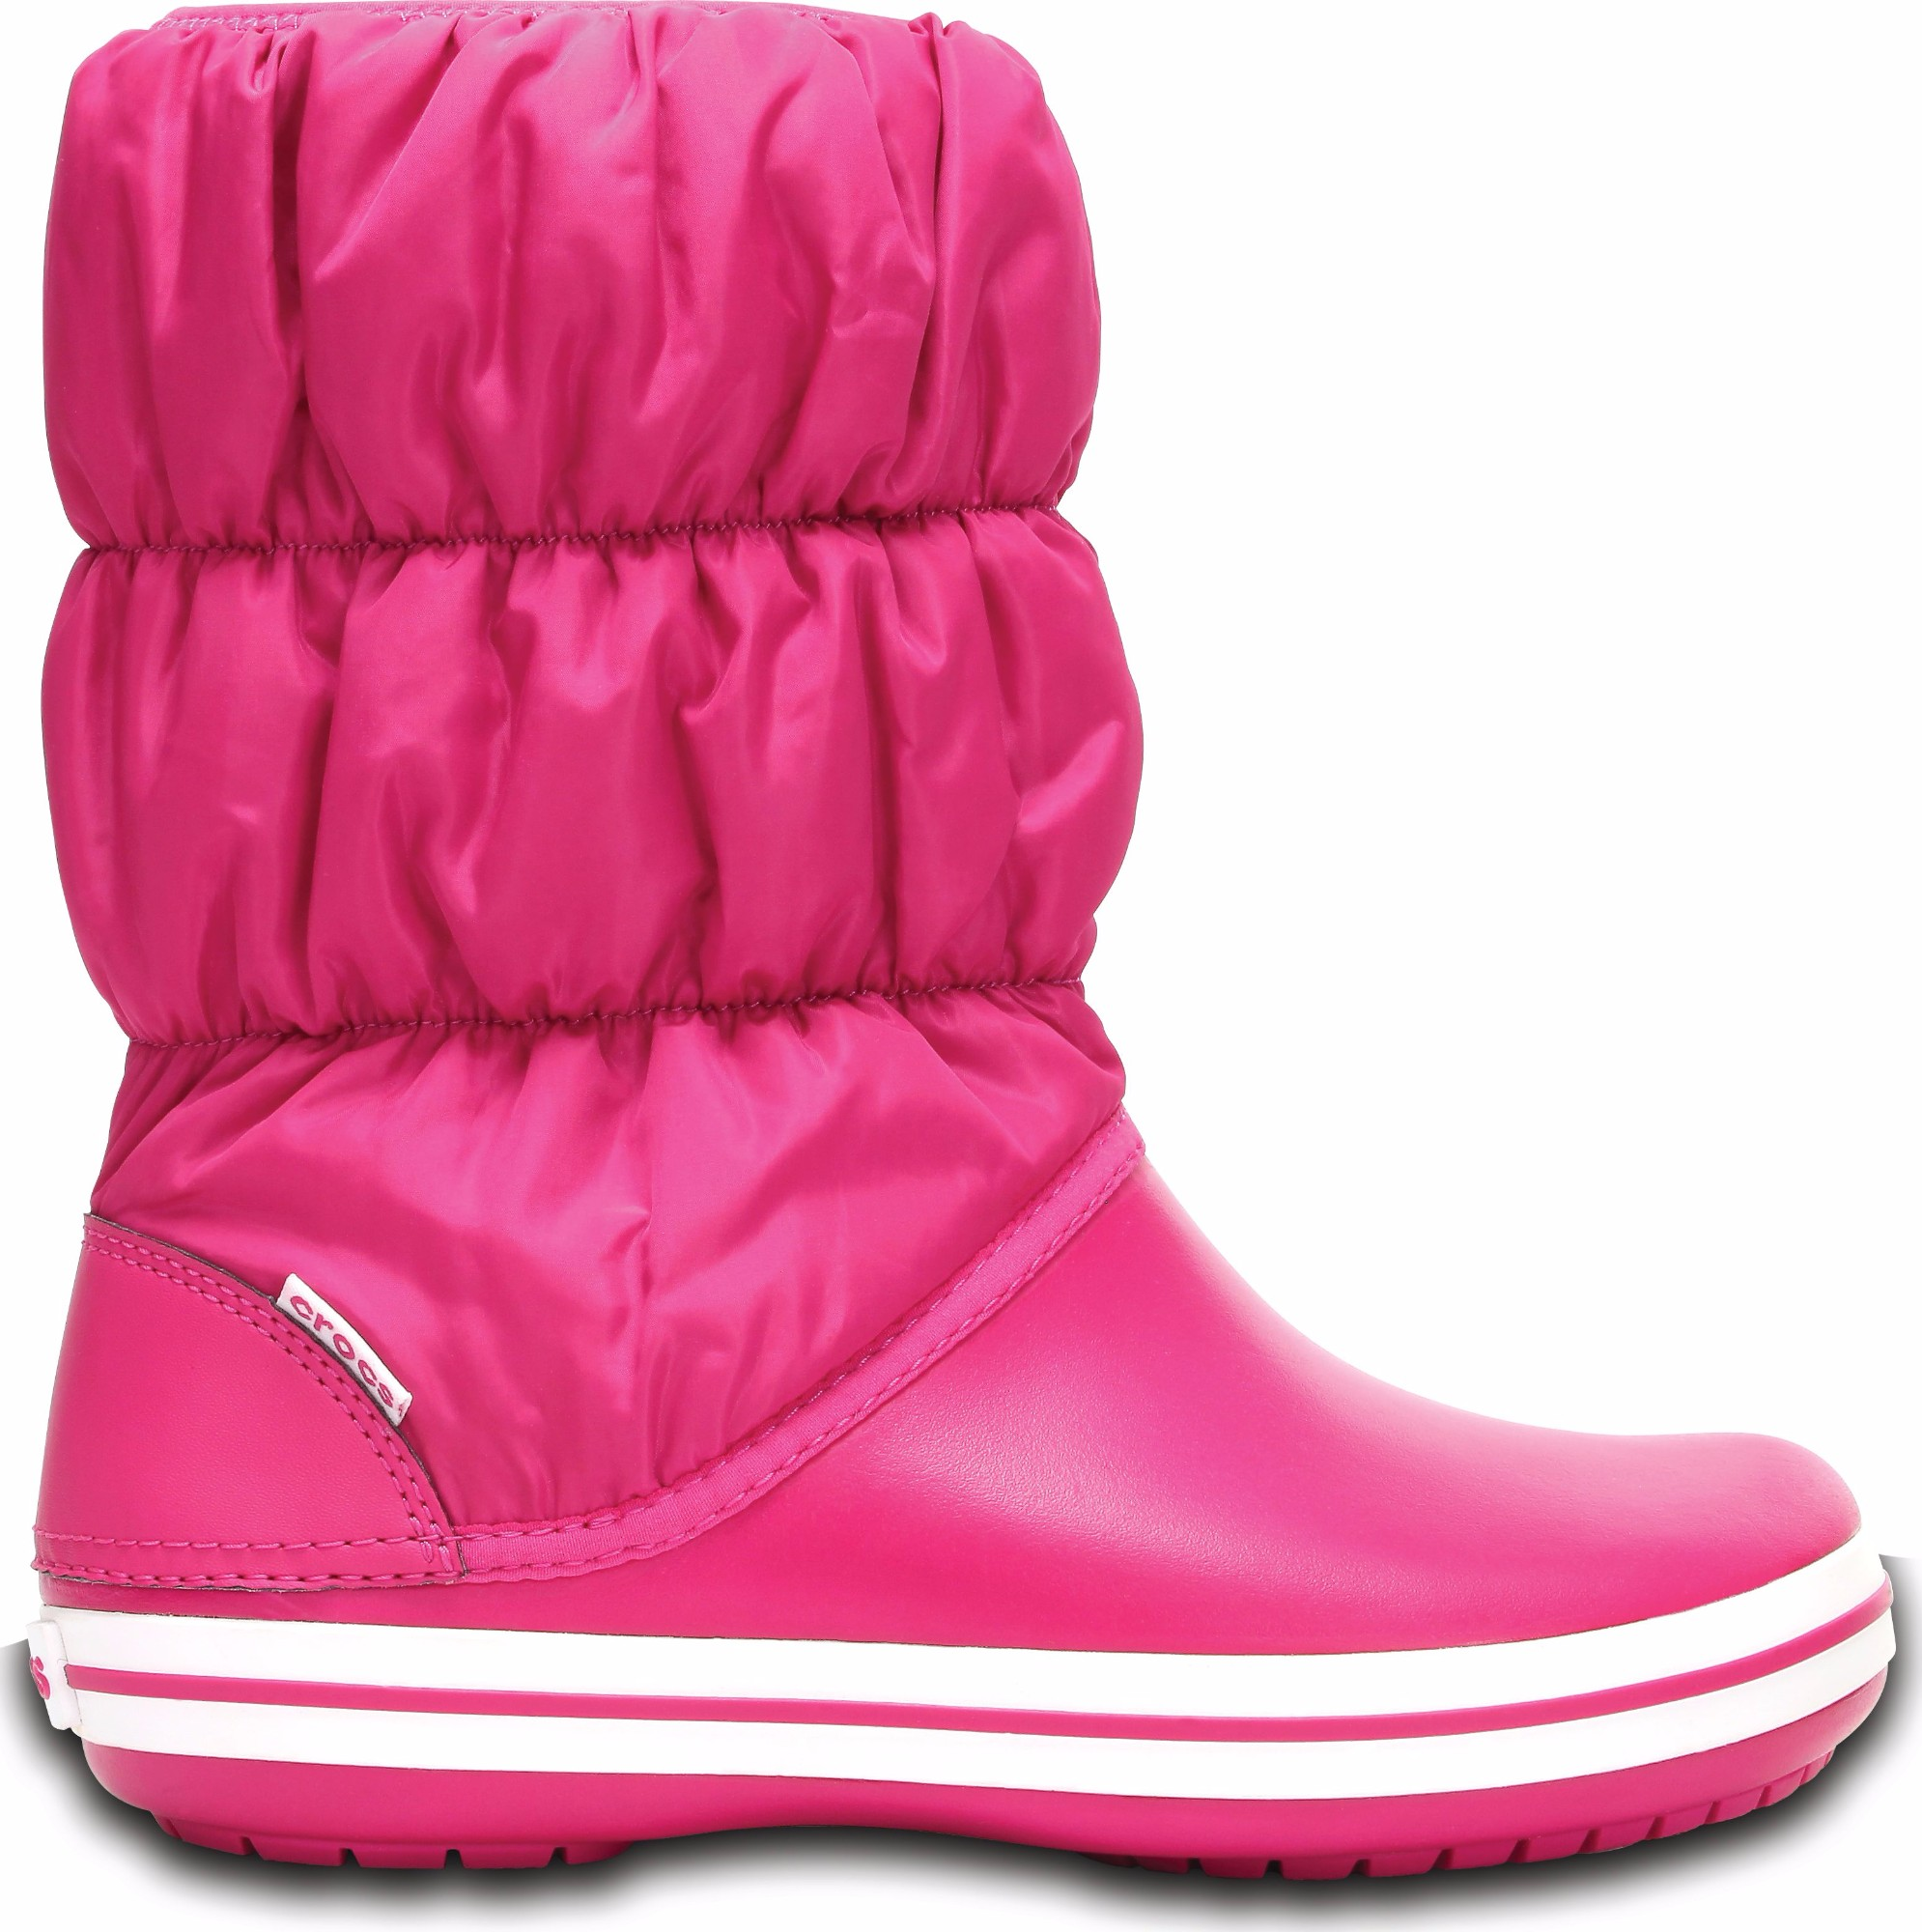 Crocs™ Winter Puff Boot Candy Pink/Candy Pink 38,5